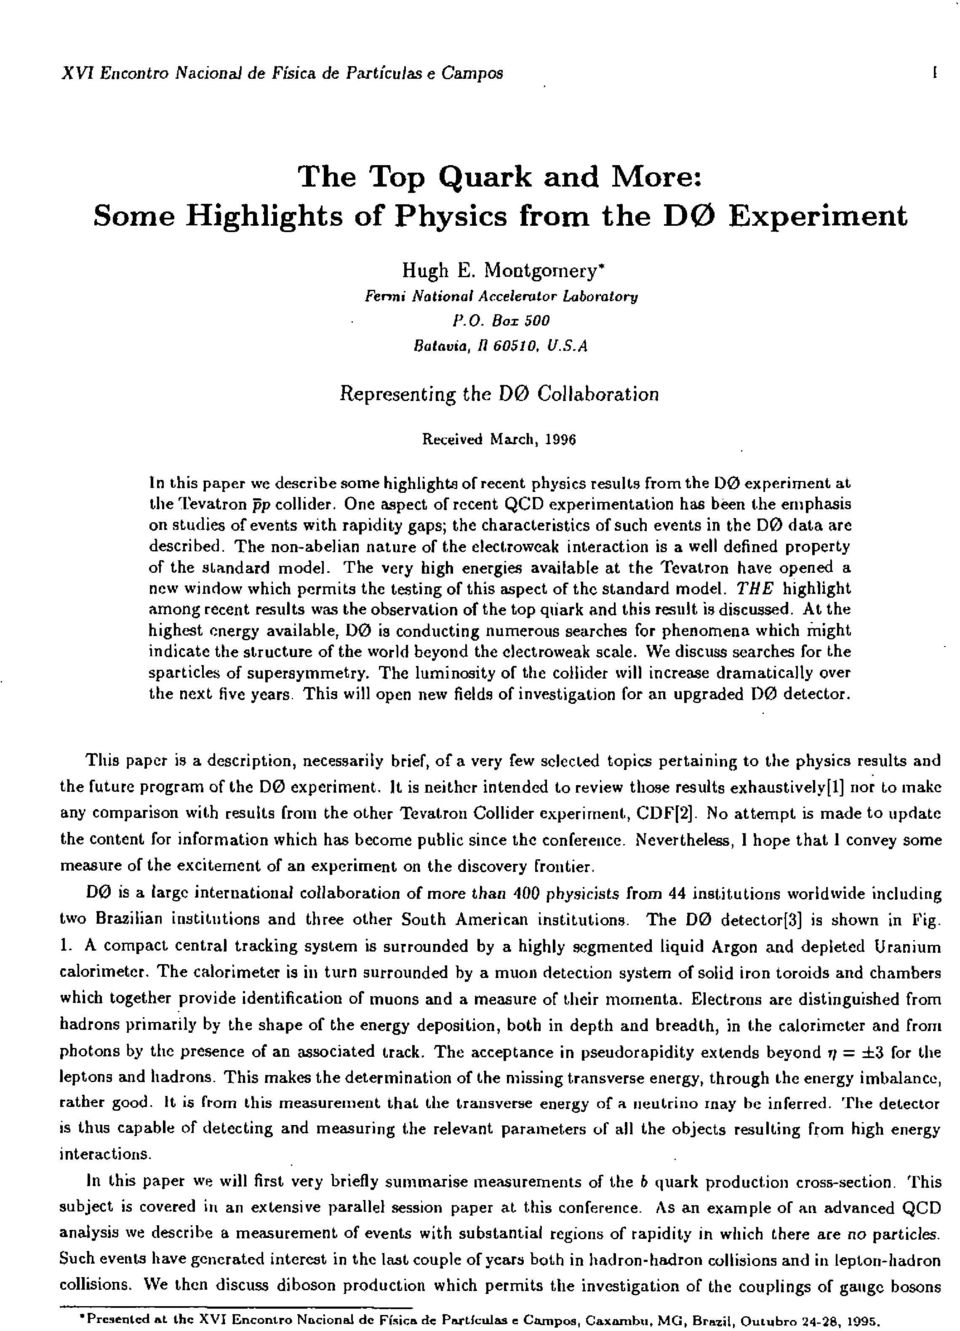 One aspect of recent QCD experimentation has been the emphasis on studies of events with rapidity gaps; the characteristics of such events in the DO data are described.